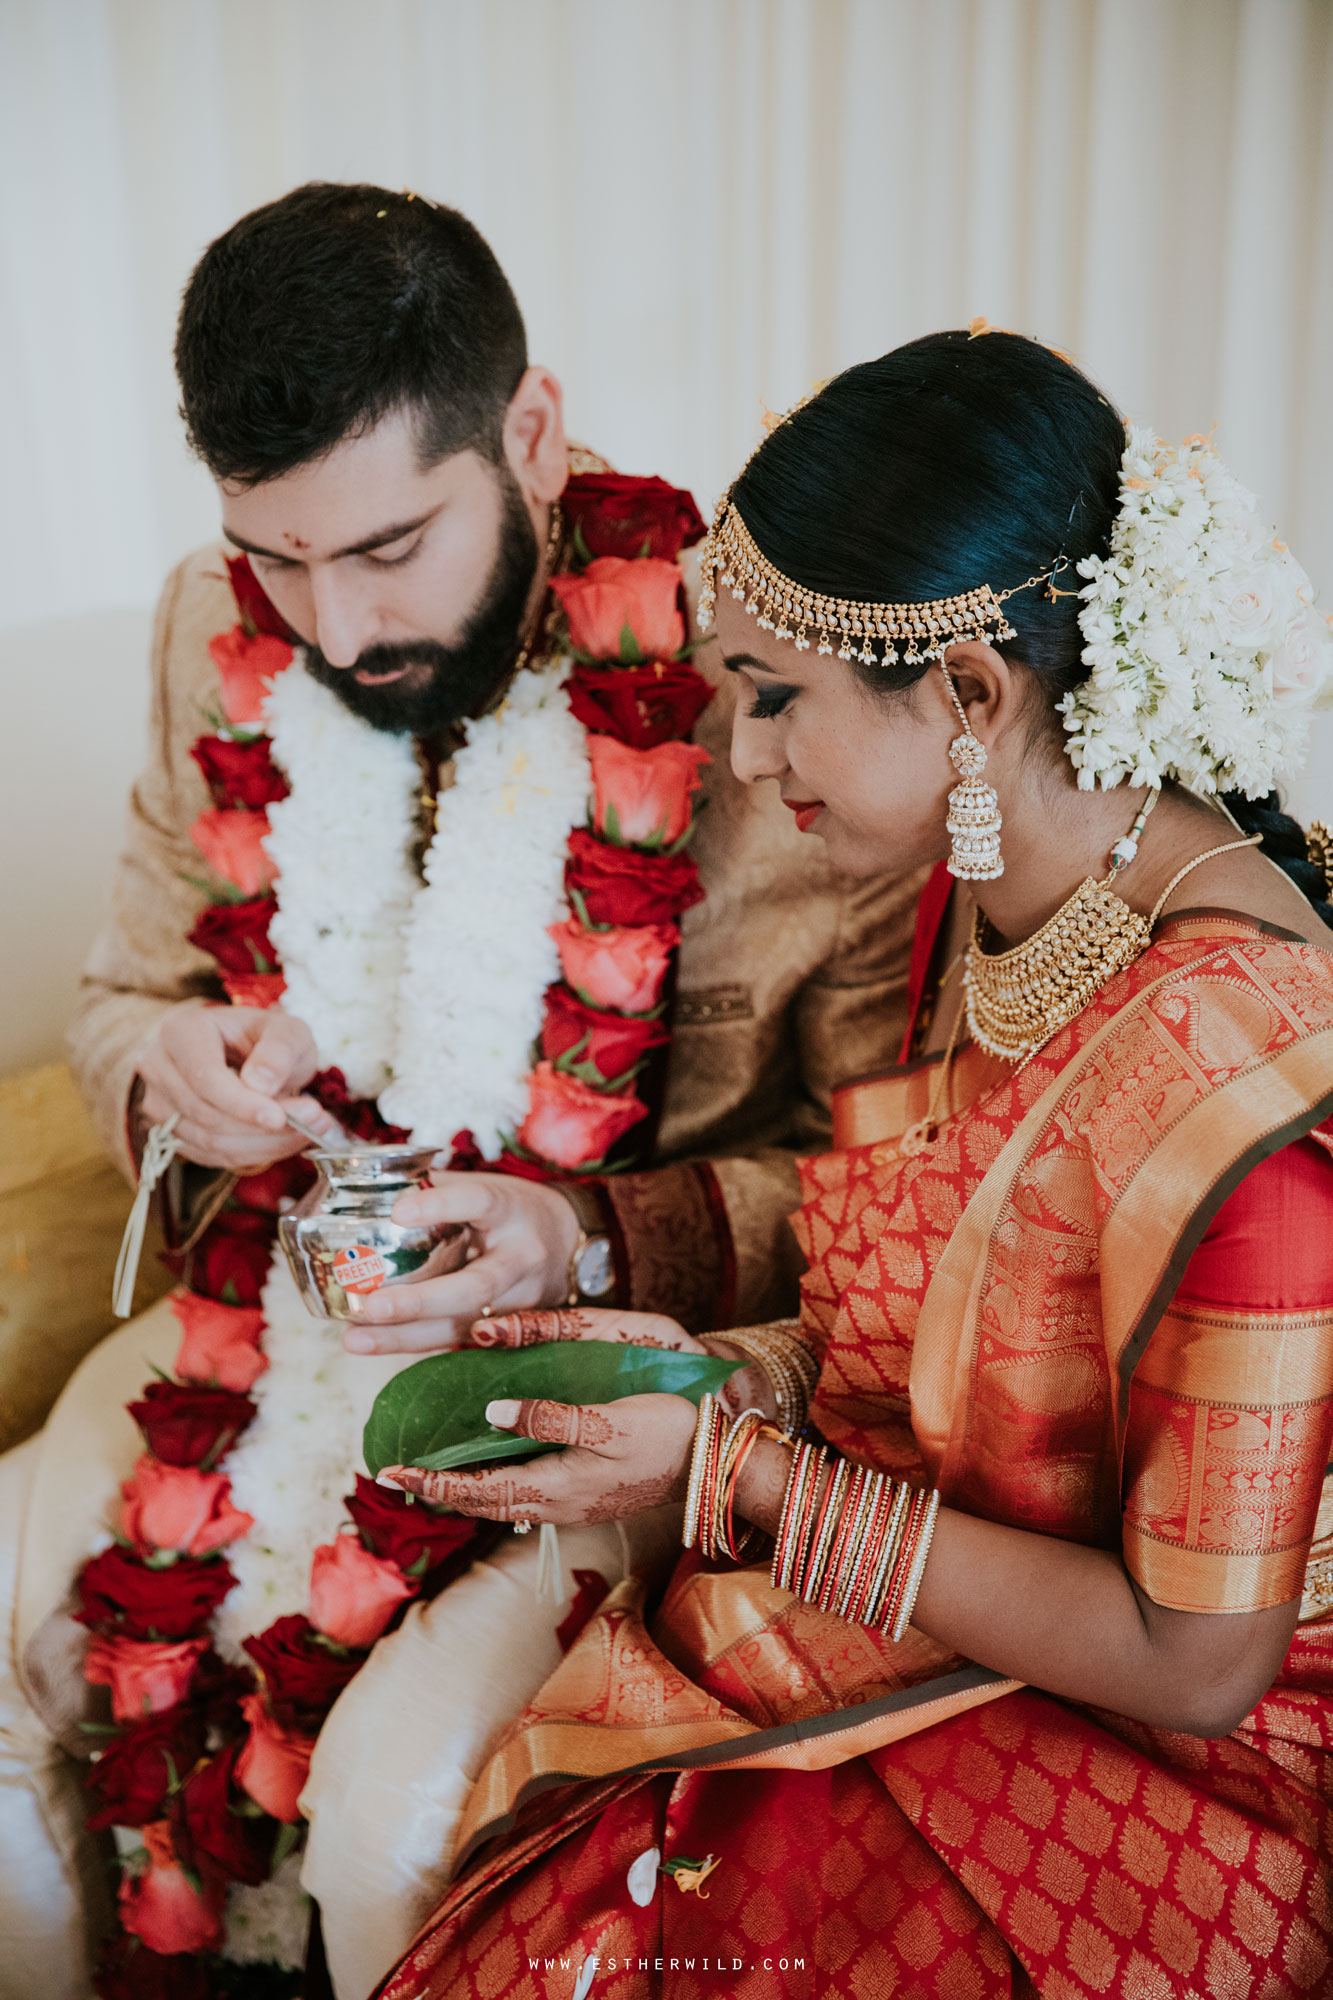 Northbrook_Park_Farnham_Surrey_London_Wedding_Hindu_Fusion_Esther_Wild_Photographer_IMG_4609.jpg